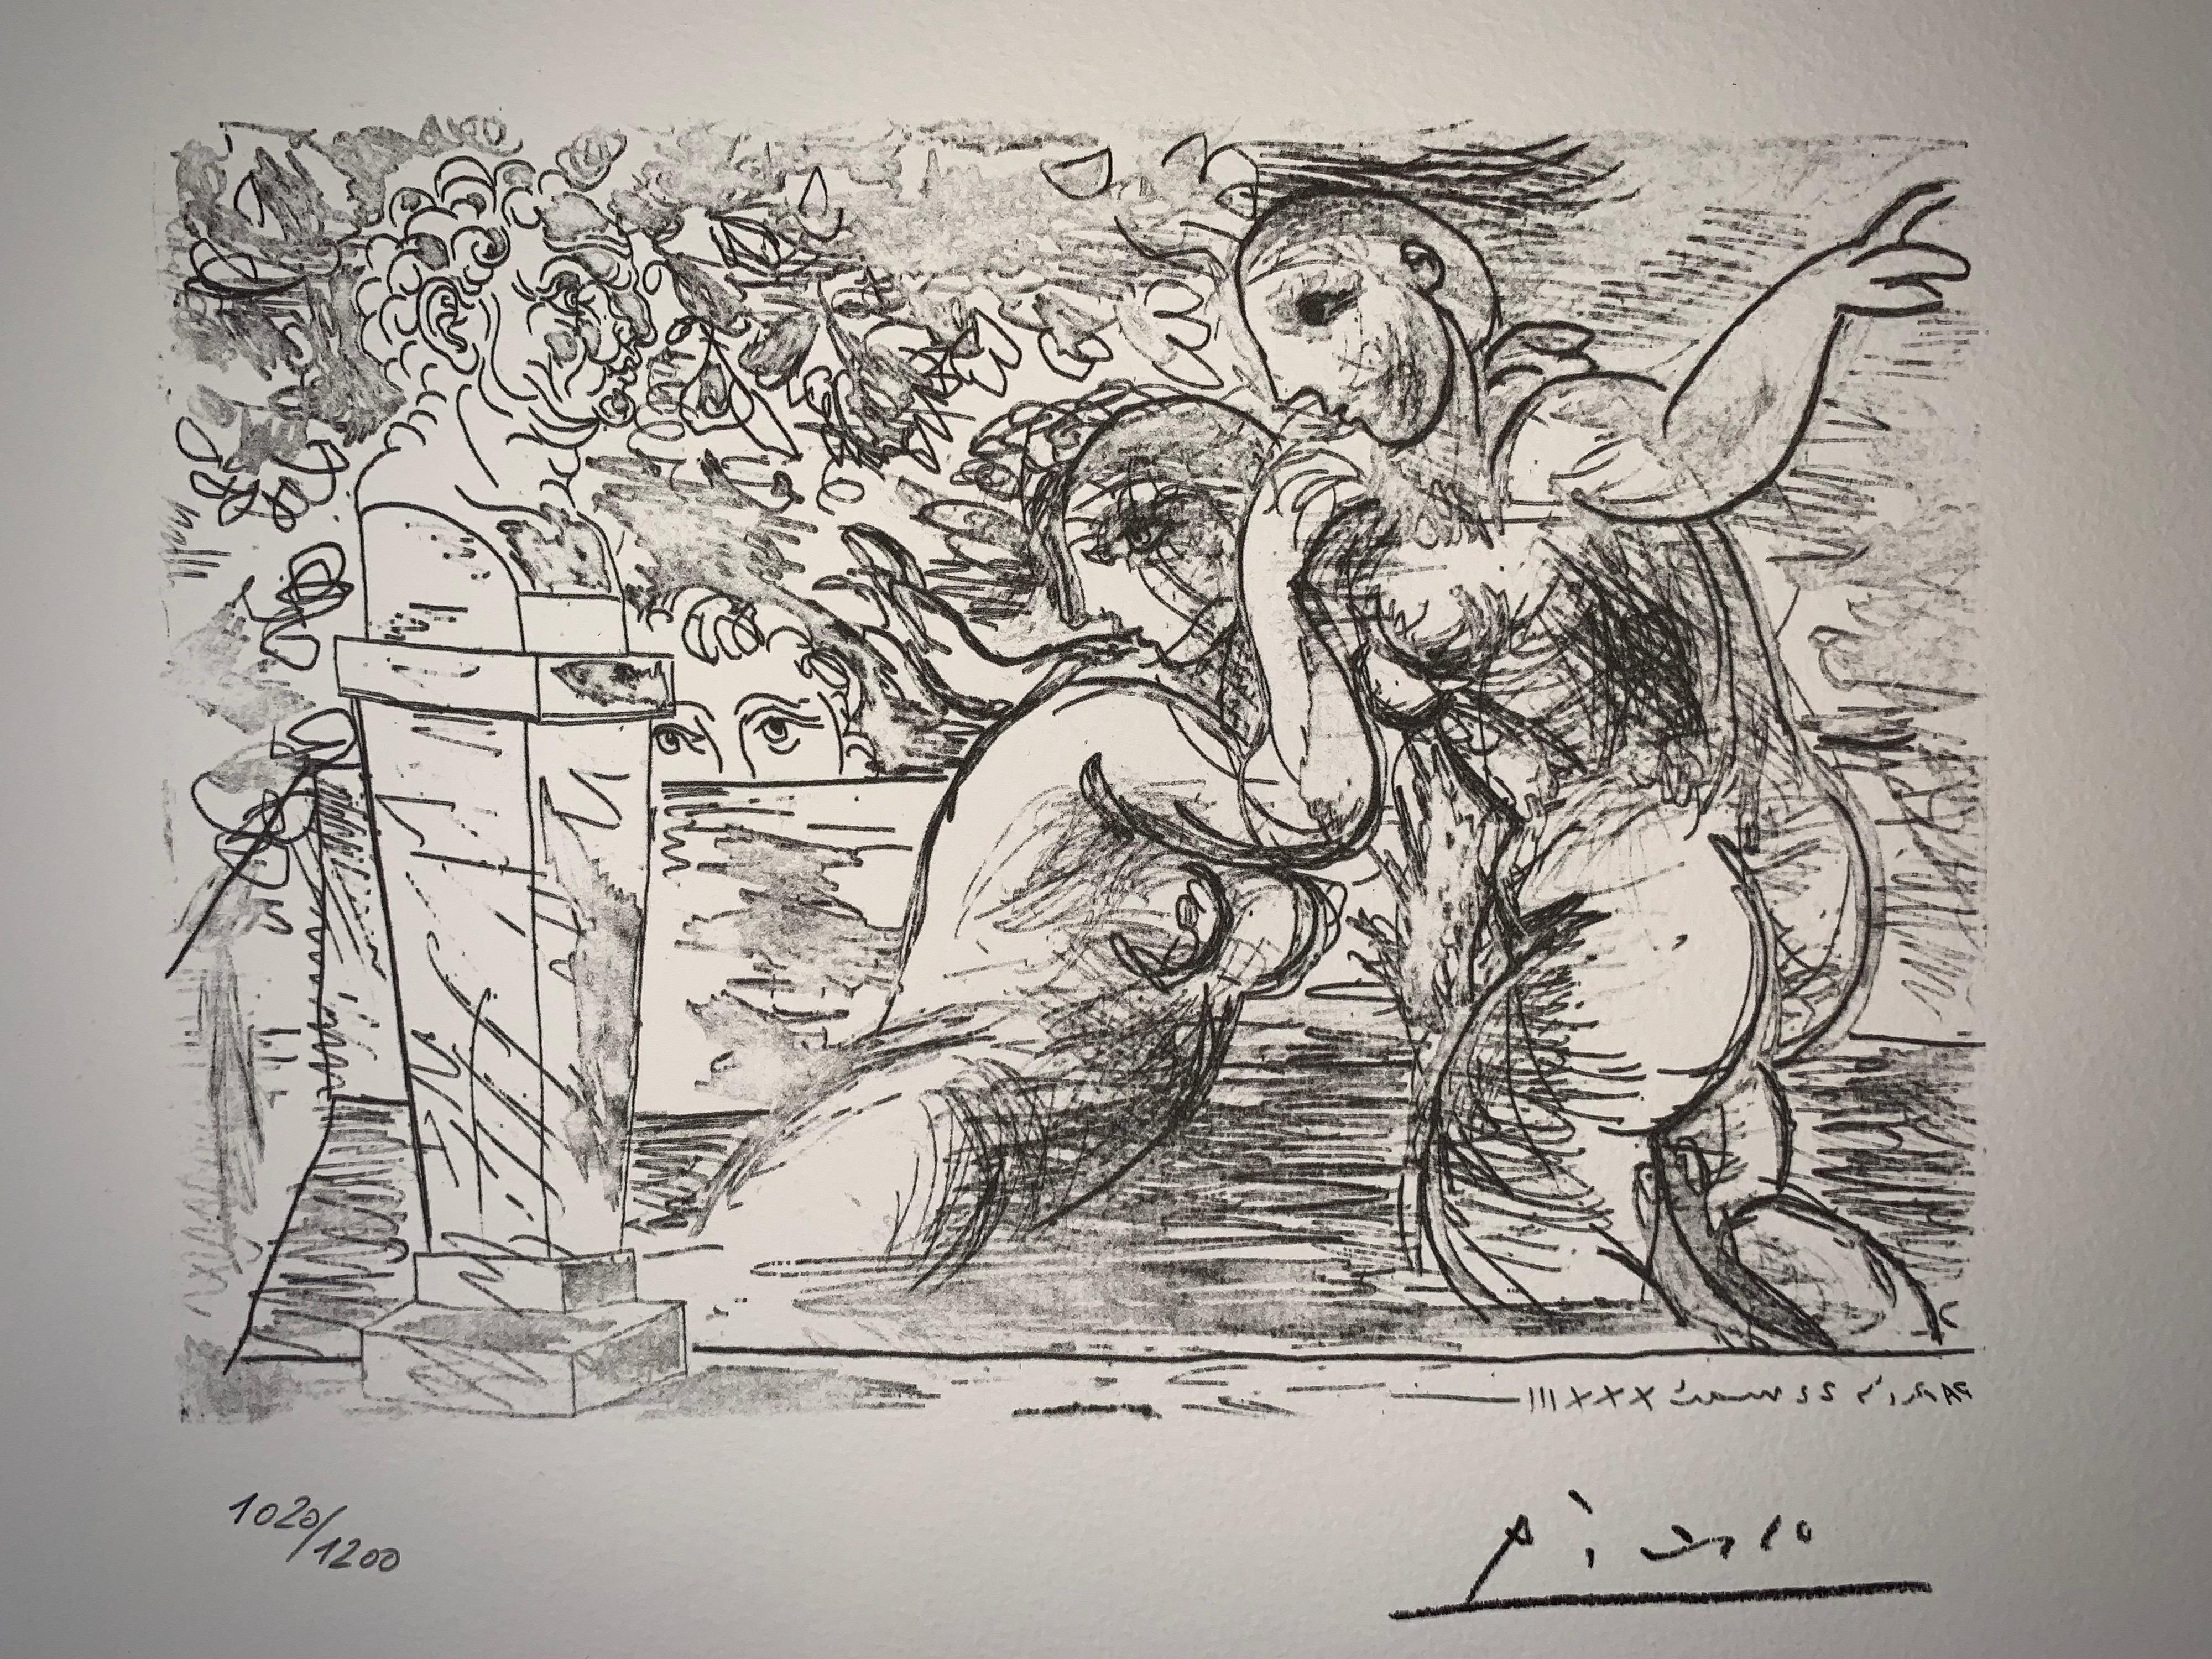 Suite Vollard plate XIV - 1973 - Signed - Pablo Picasso (1881-1973) (after)